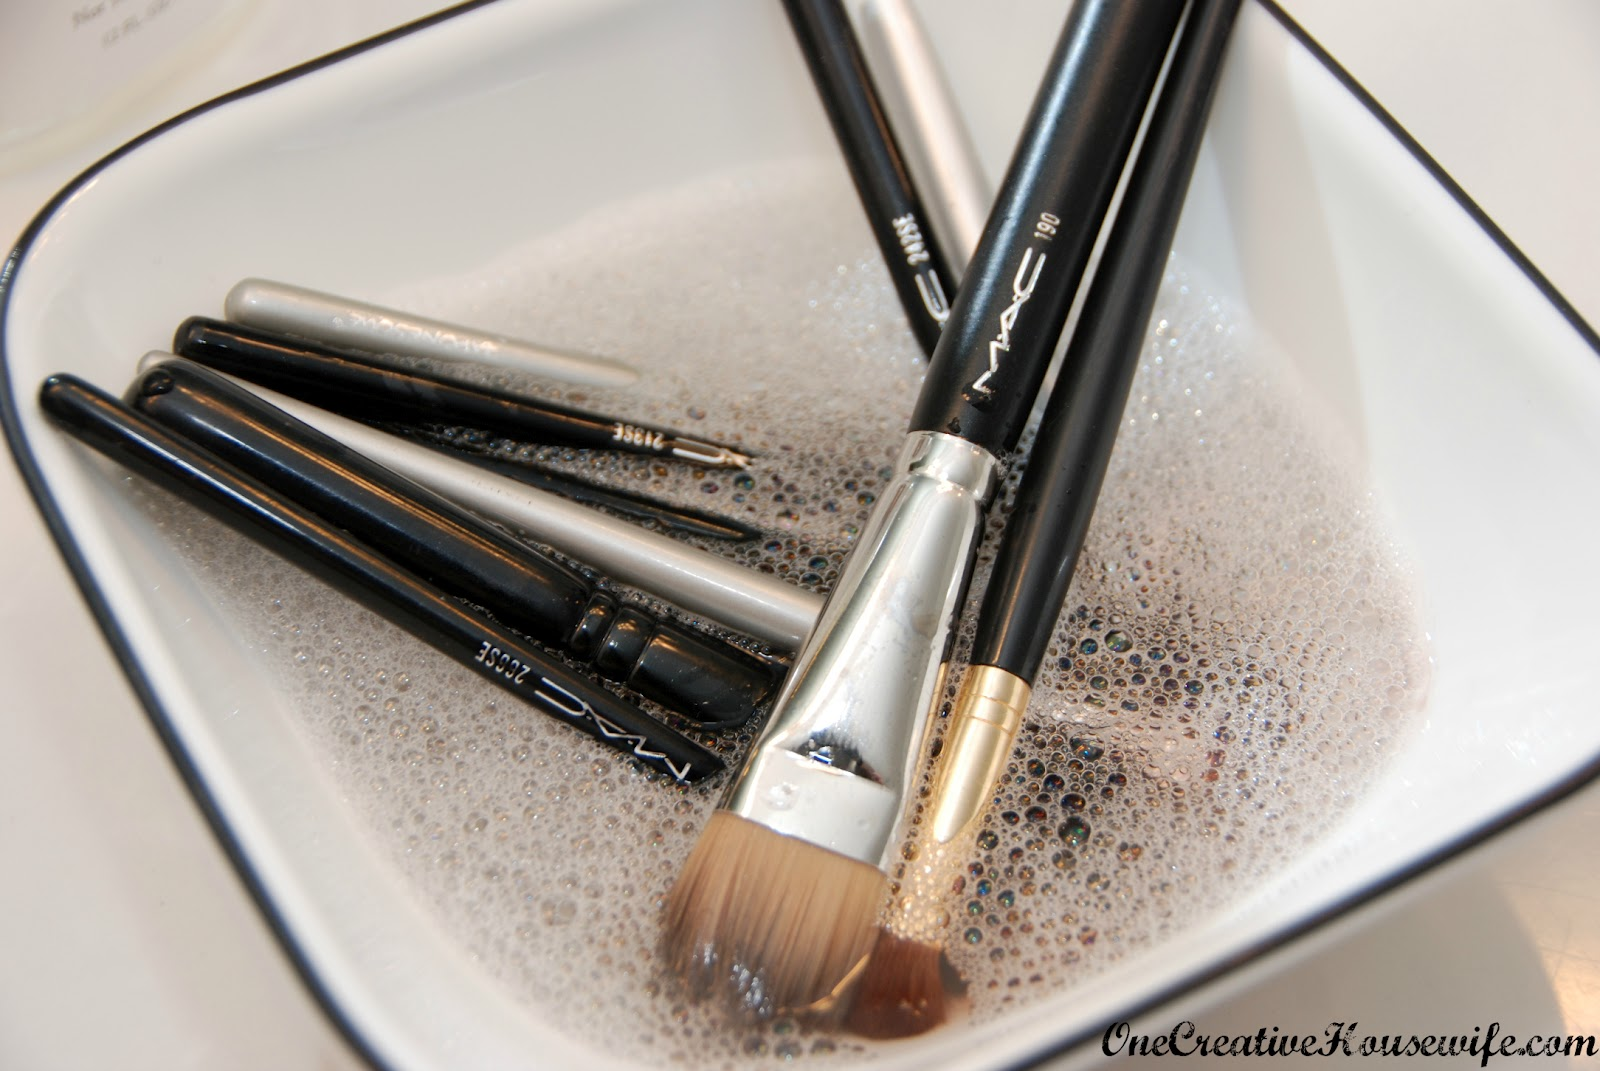 One Creative Housewife: Cleaning Makeup Brushes